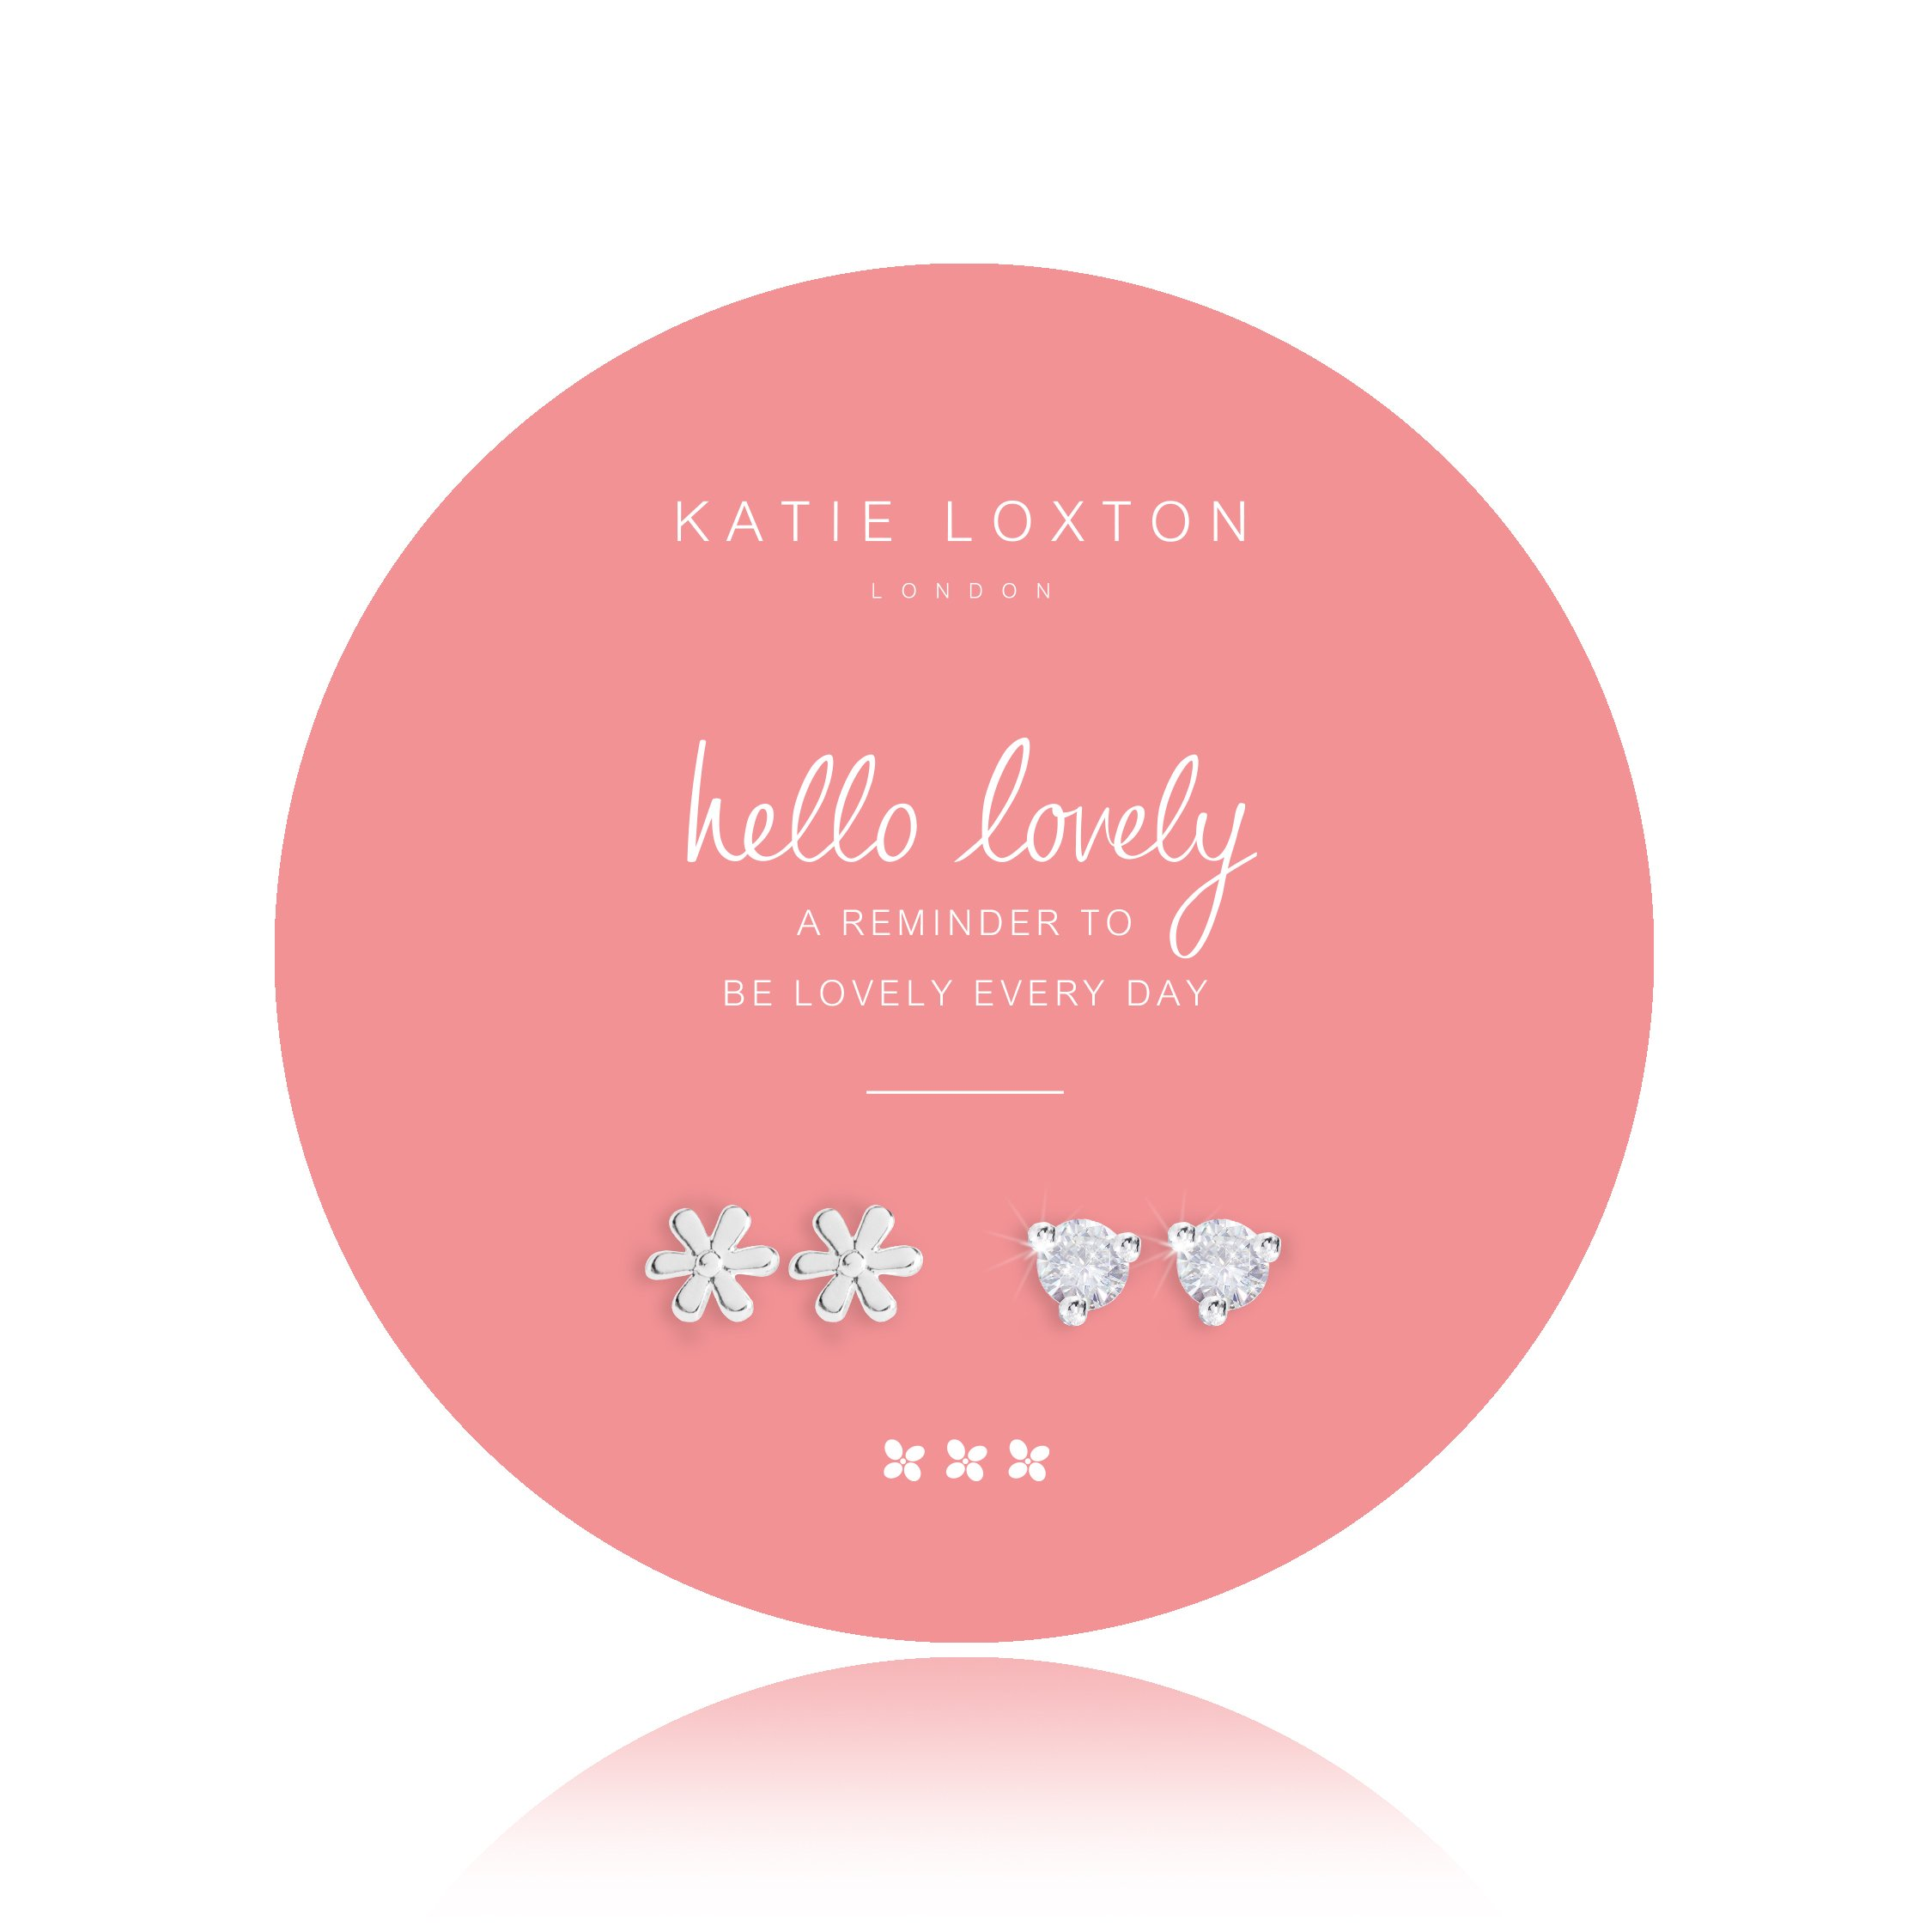 Katie Loxton - Summer Sparkle - Hello Lovely - Silver Flower Shaped and Crystal Earrings on Round Card - Set of 2